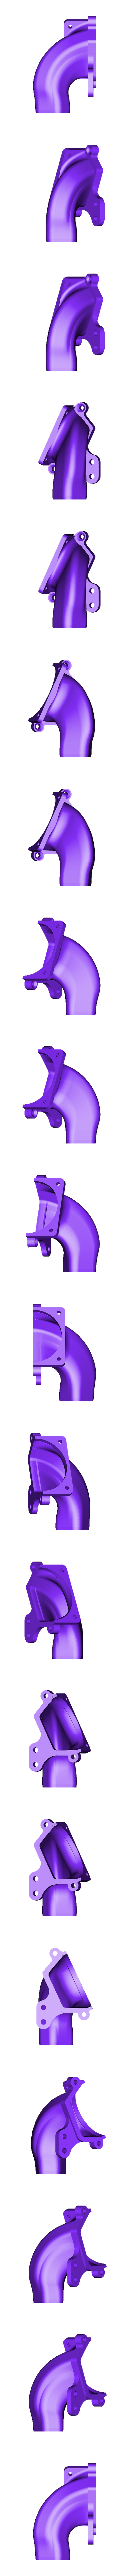 FangUpRight.stl Download free STL file Fang for Alfawise U20 Printer • 3D print template, uhgues